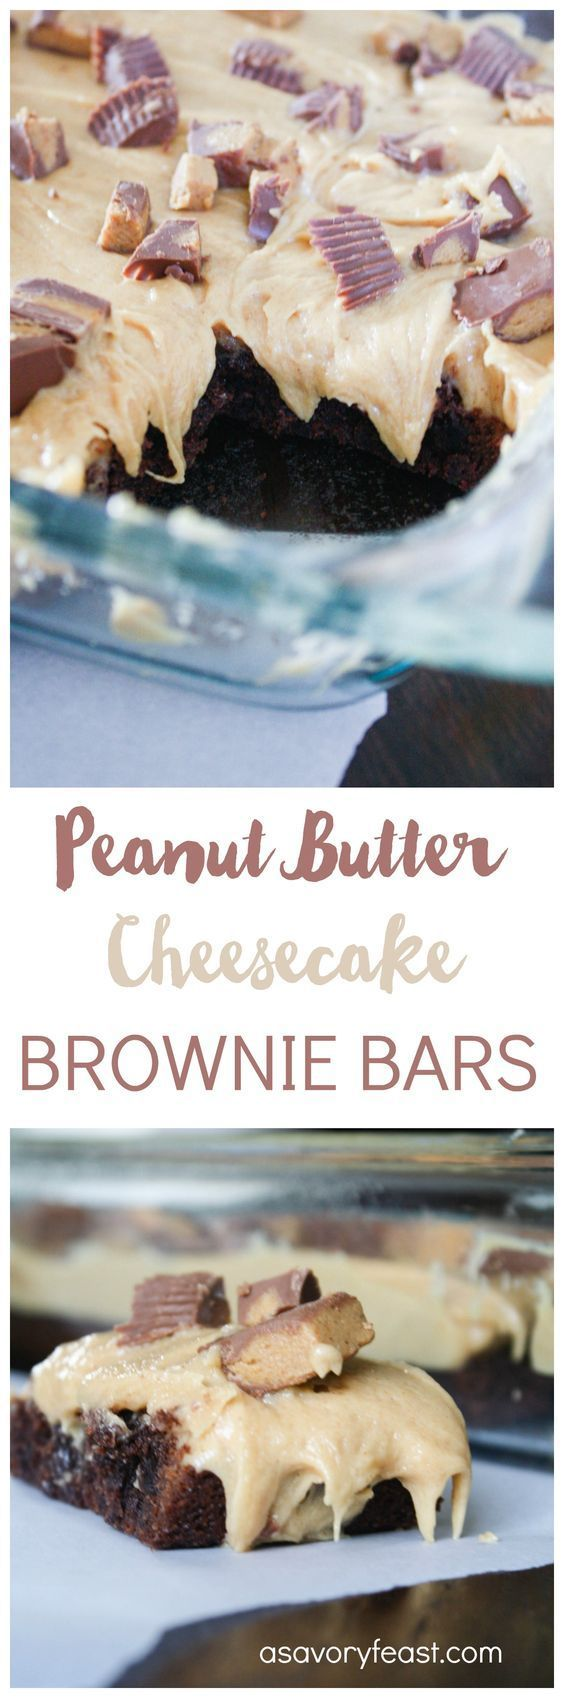 Peanut Butter Cheesecake Brownie Bars